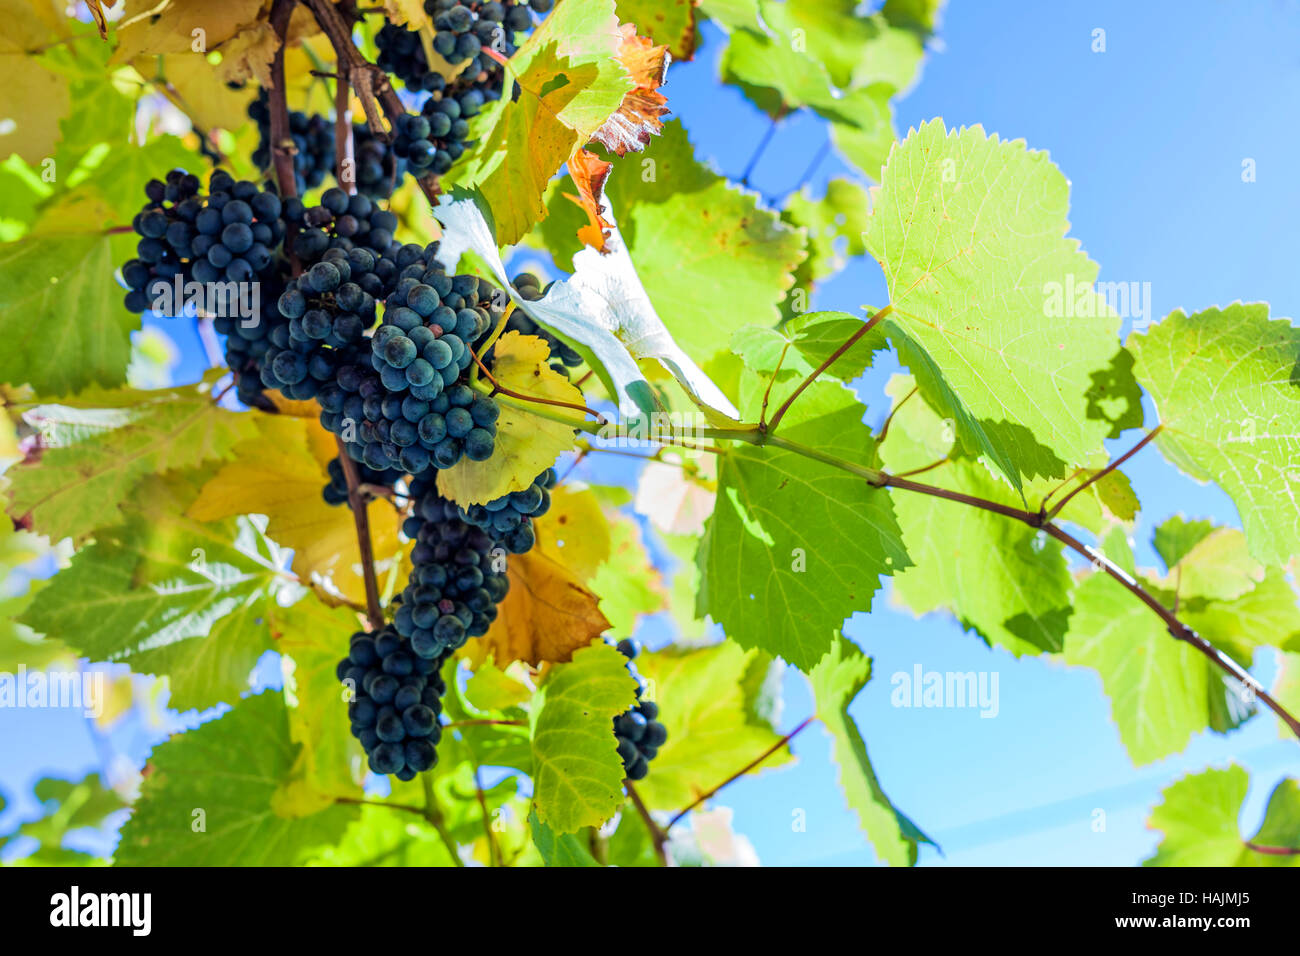 Blue vine grape on grapevine with some leaves in a styrian vine blue vine grape on grapevine with some leaves in a styrian vine route izmirmasajfo Images